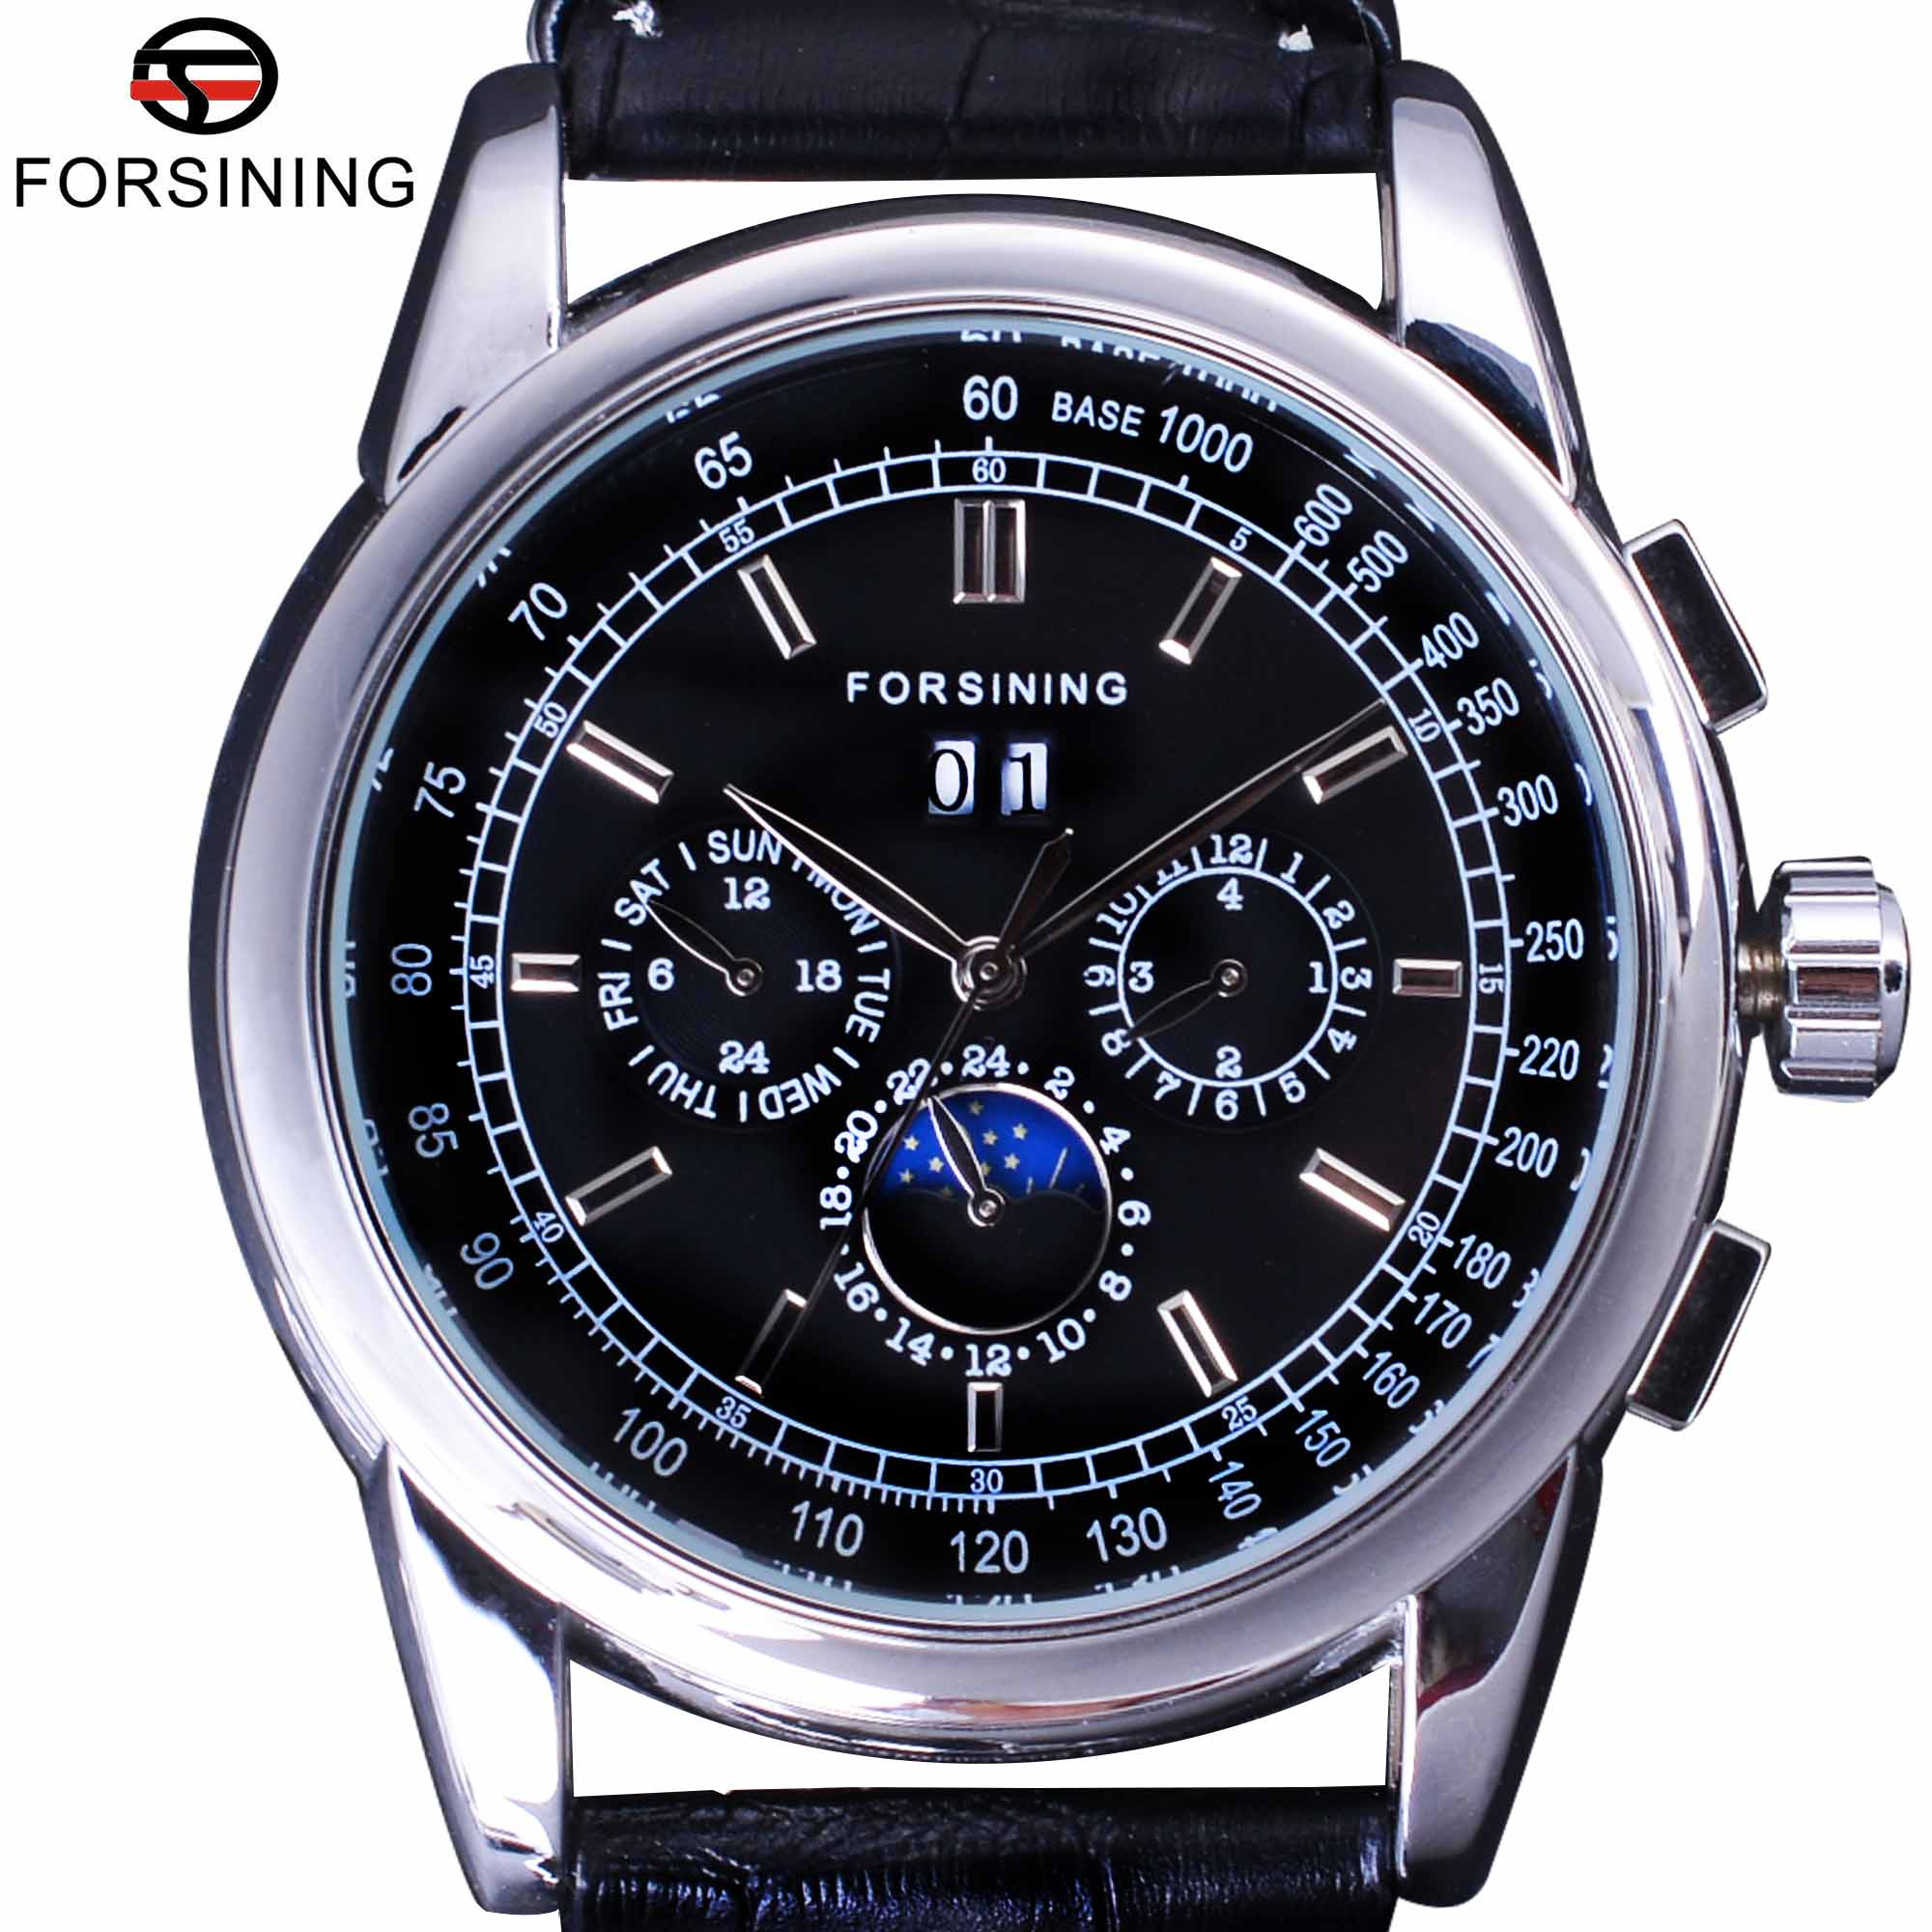 Forsining Luxury Moon Phase Design ShangHai Movement Fashion Casual Wear Automatic Watch Scale Dial Mens Watch Top Brand Luxury берестов мед горный аргентина 100 г